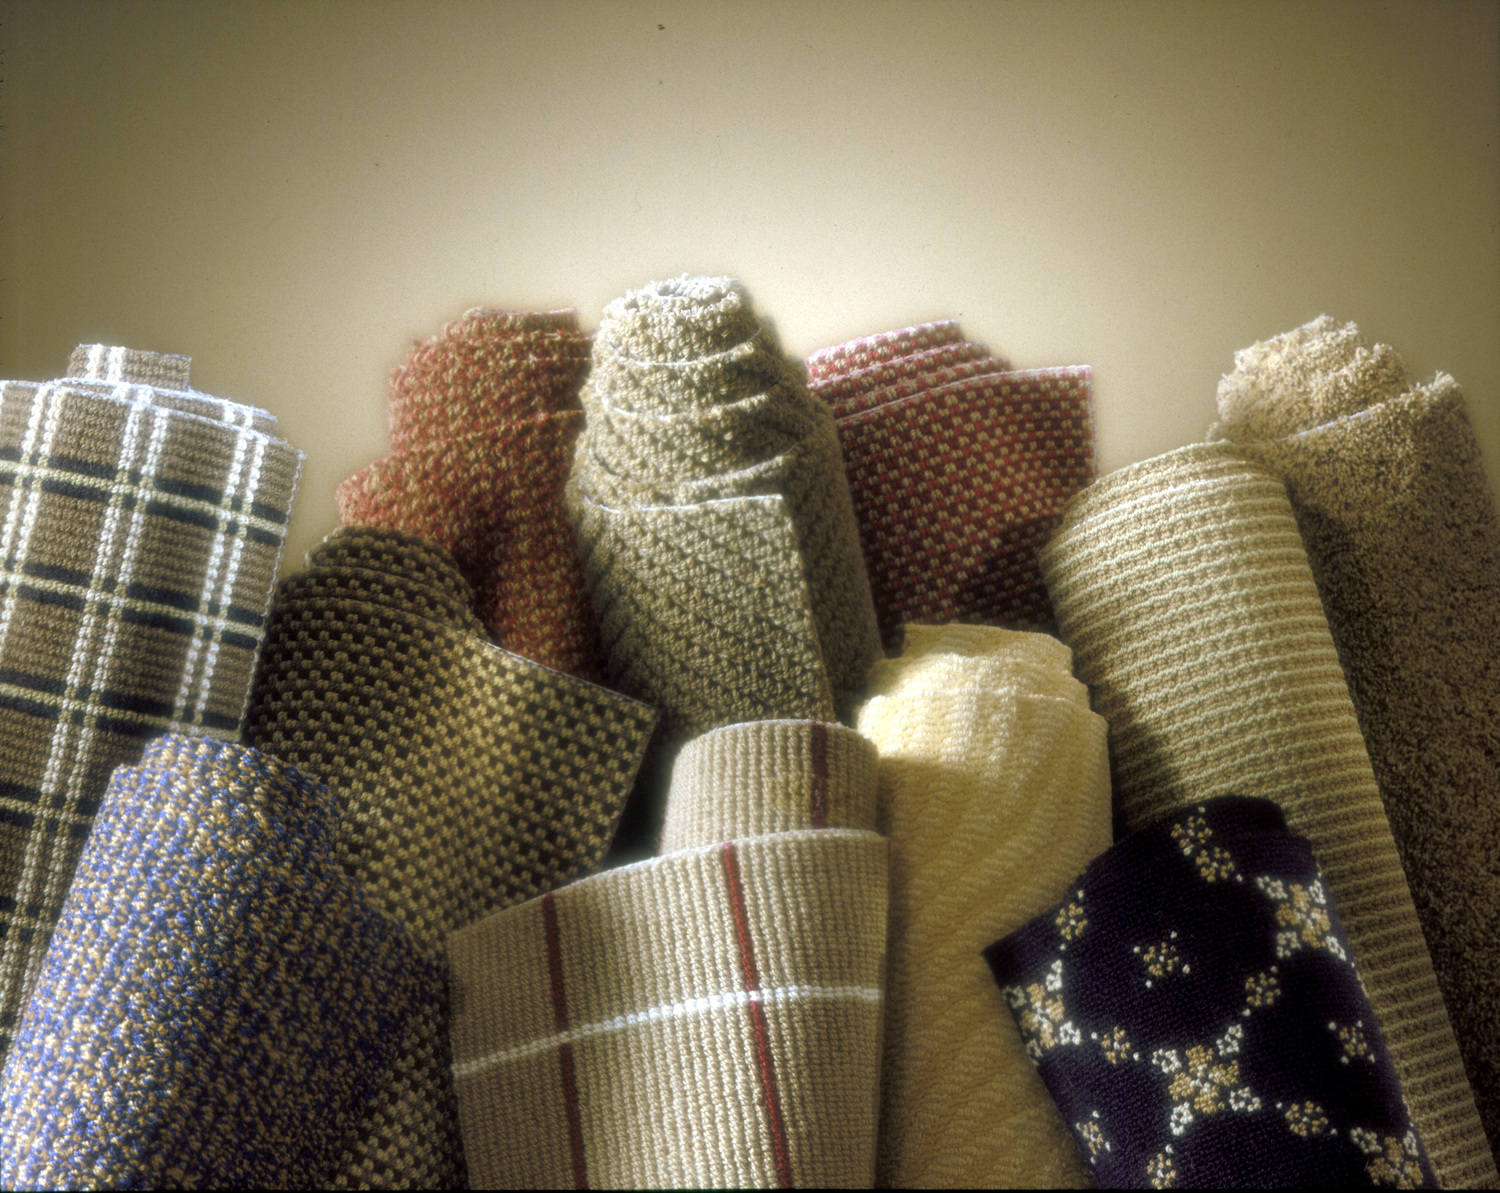 Carpets and Vinyl Deals in Swanage. 10% off orders over 20m2